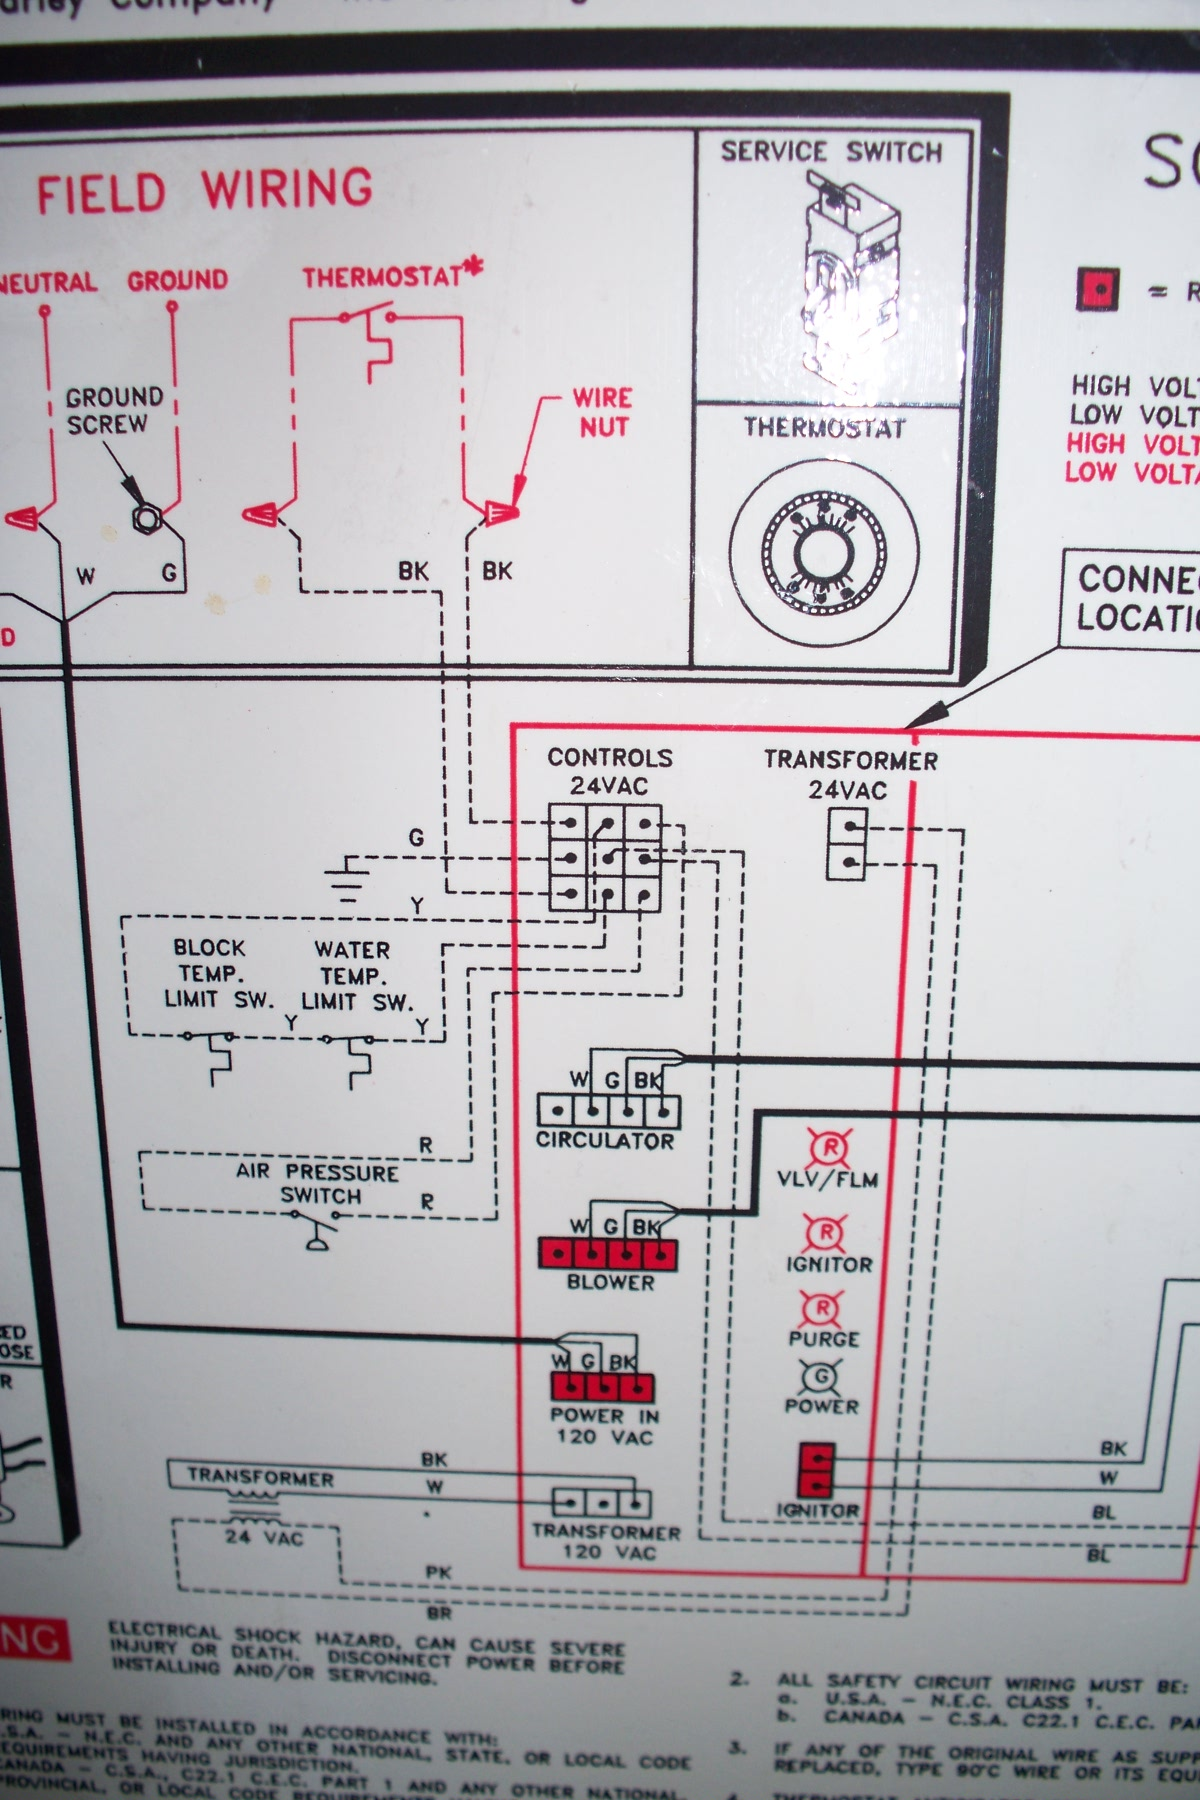 2014 01 12_010619_100_3141 i have a weil mcclain gv5 series 2 boiler with an amtrol amtrol boilermate wiring diagram at cos-gaming.co